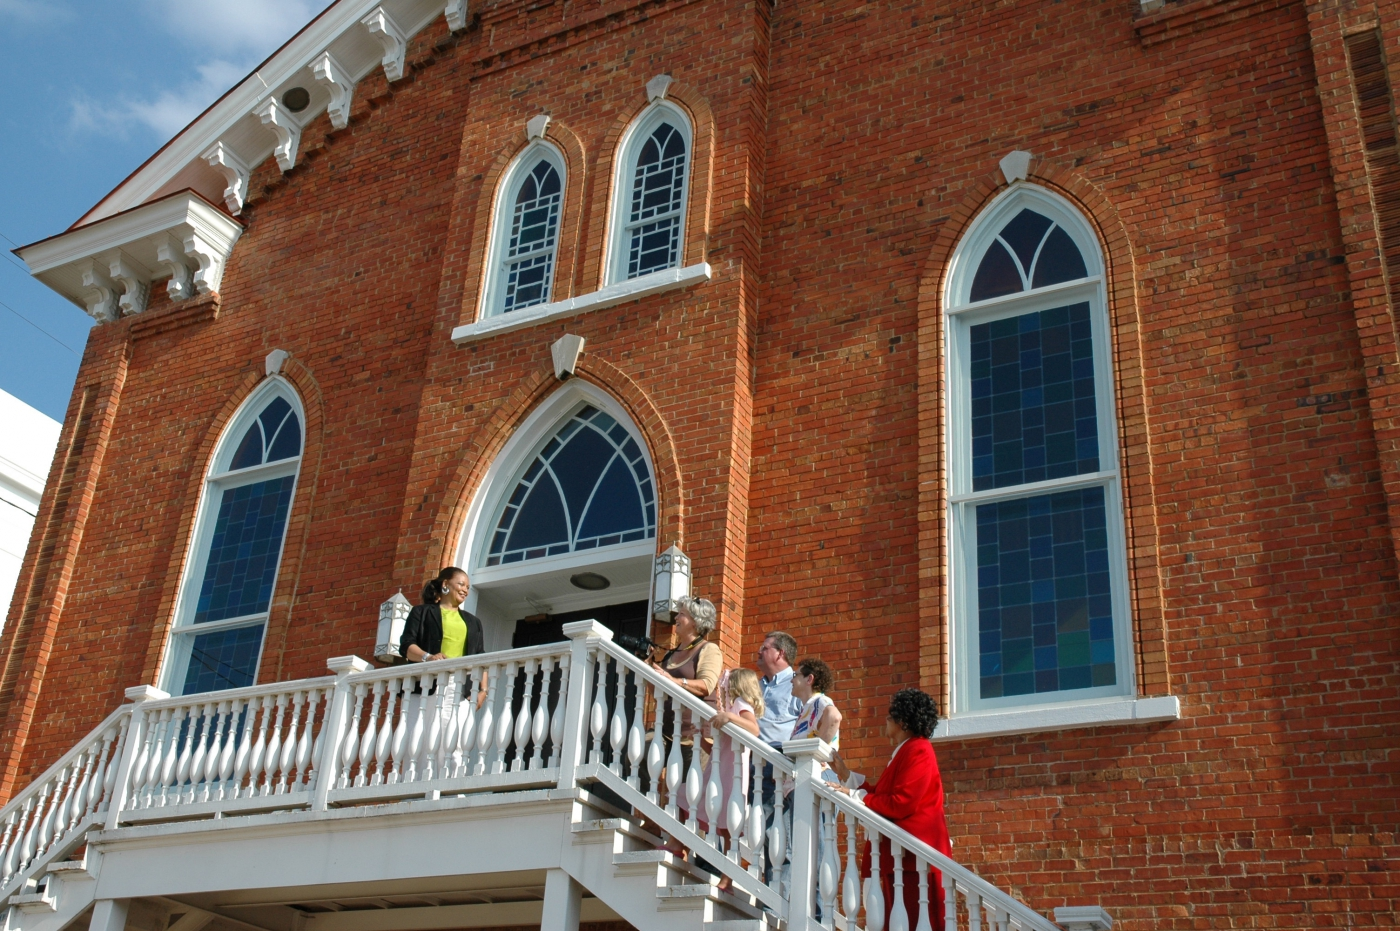 Martin Luther King, Jr., first pastored and became involved in important Civil Rights Movements at the Dexter Avenue King Memorial Baptist Church.